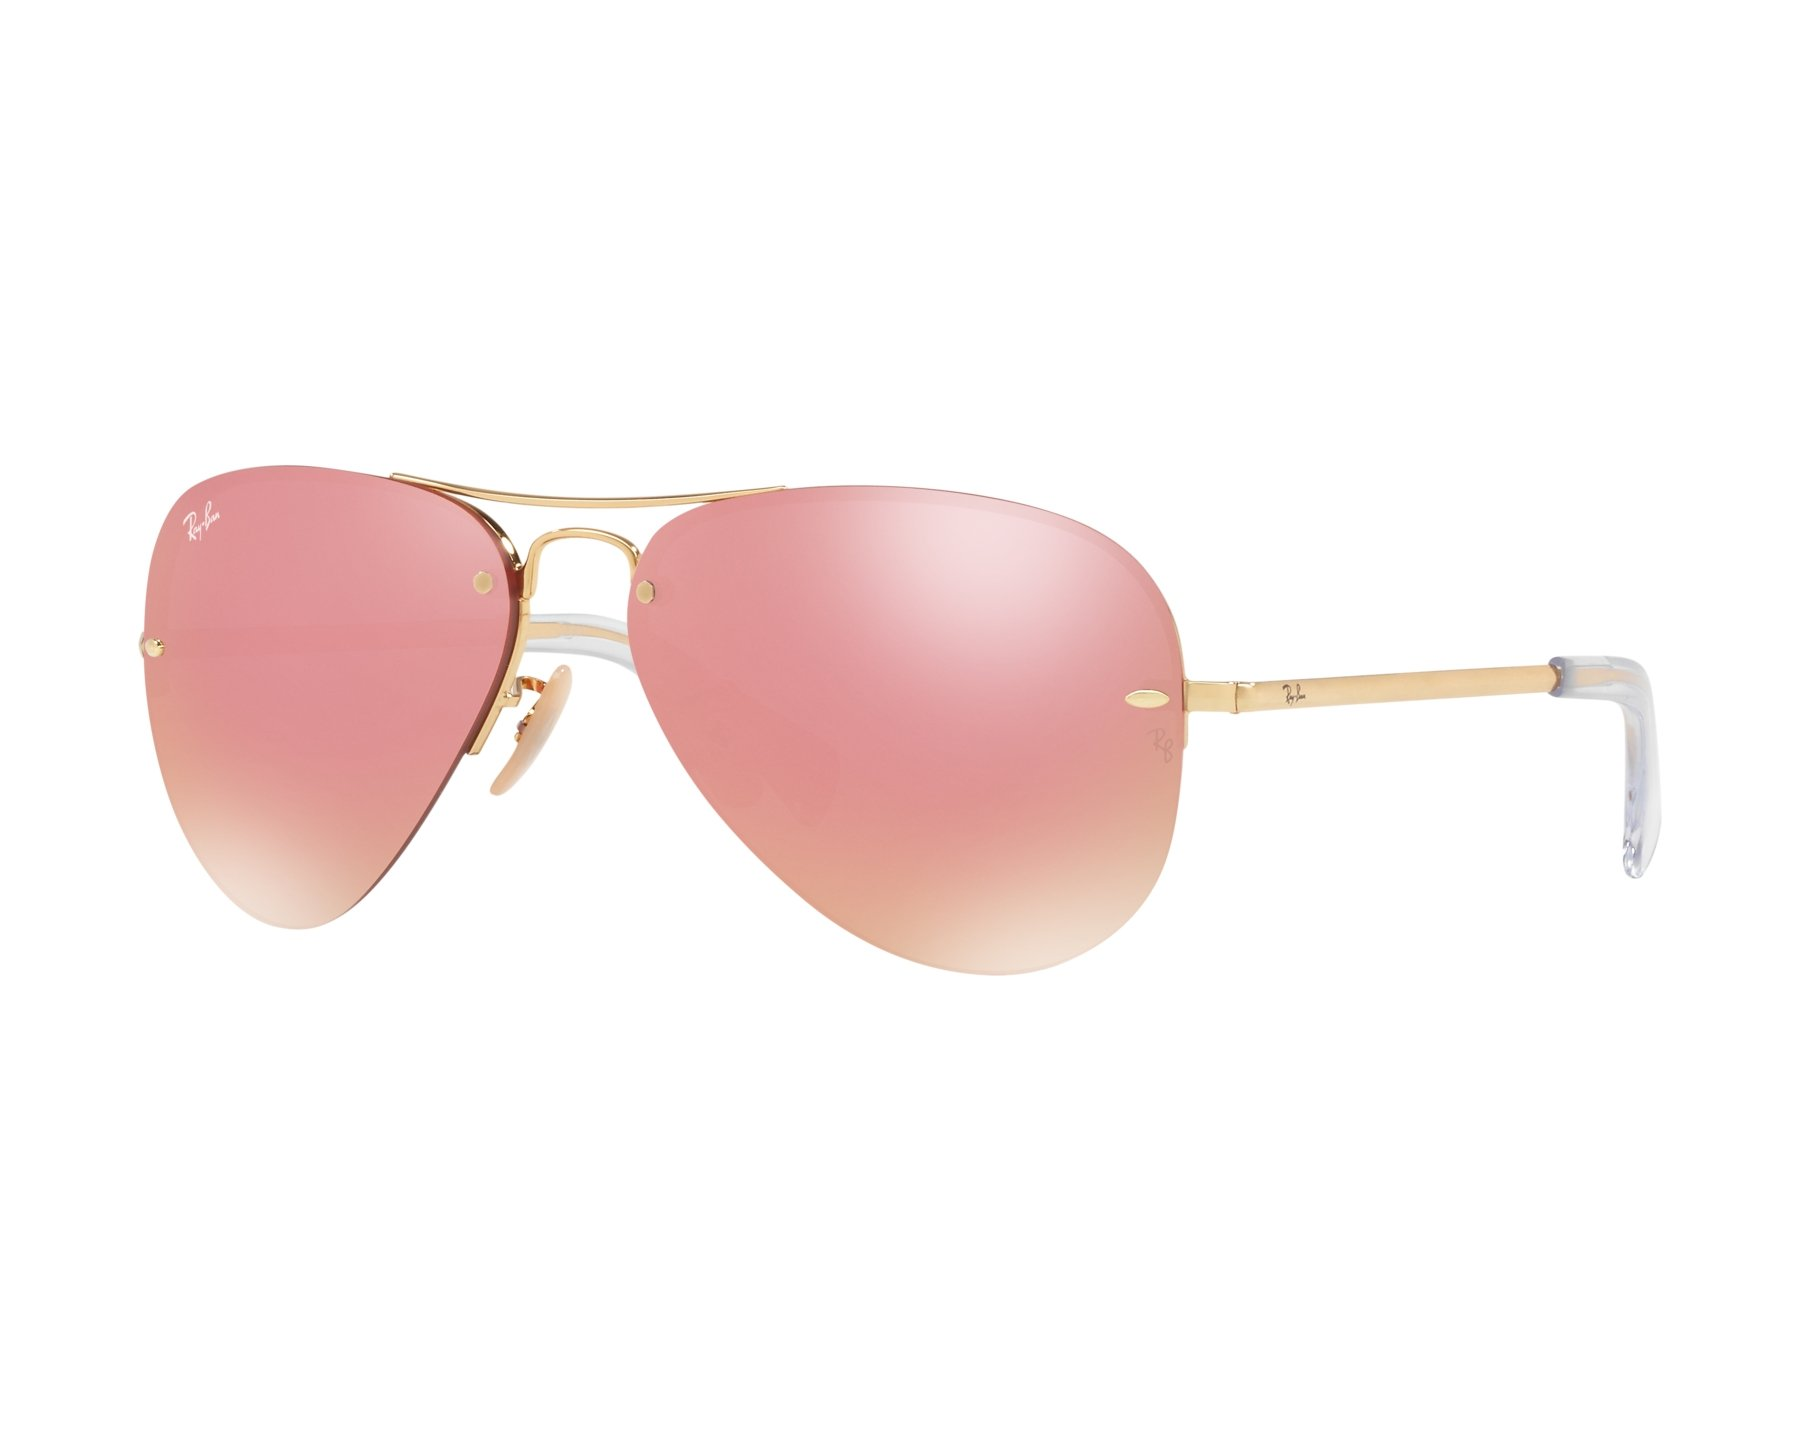 90526bcd2c Sunglasses Ray-Ban RB-3449 001 E4 59-14 Gold